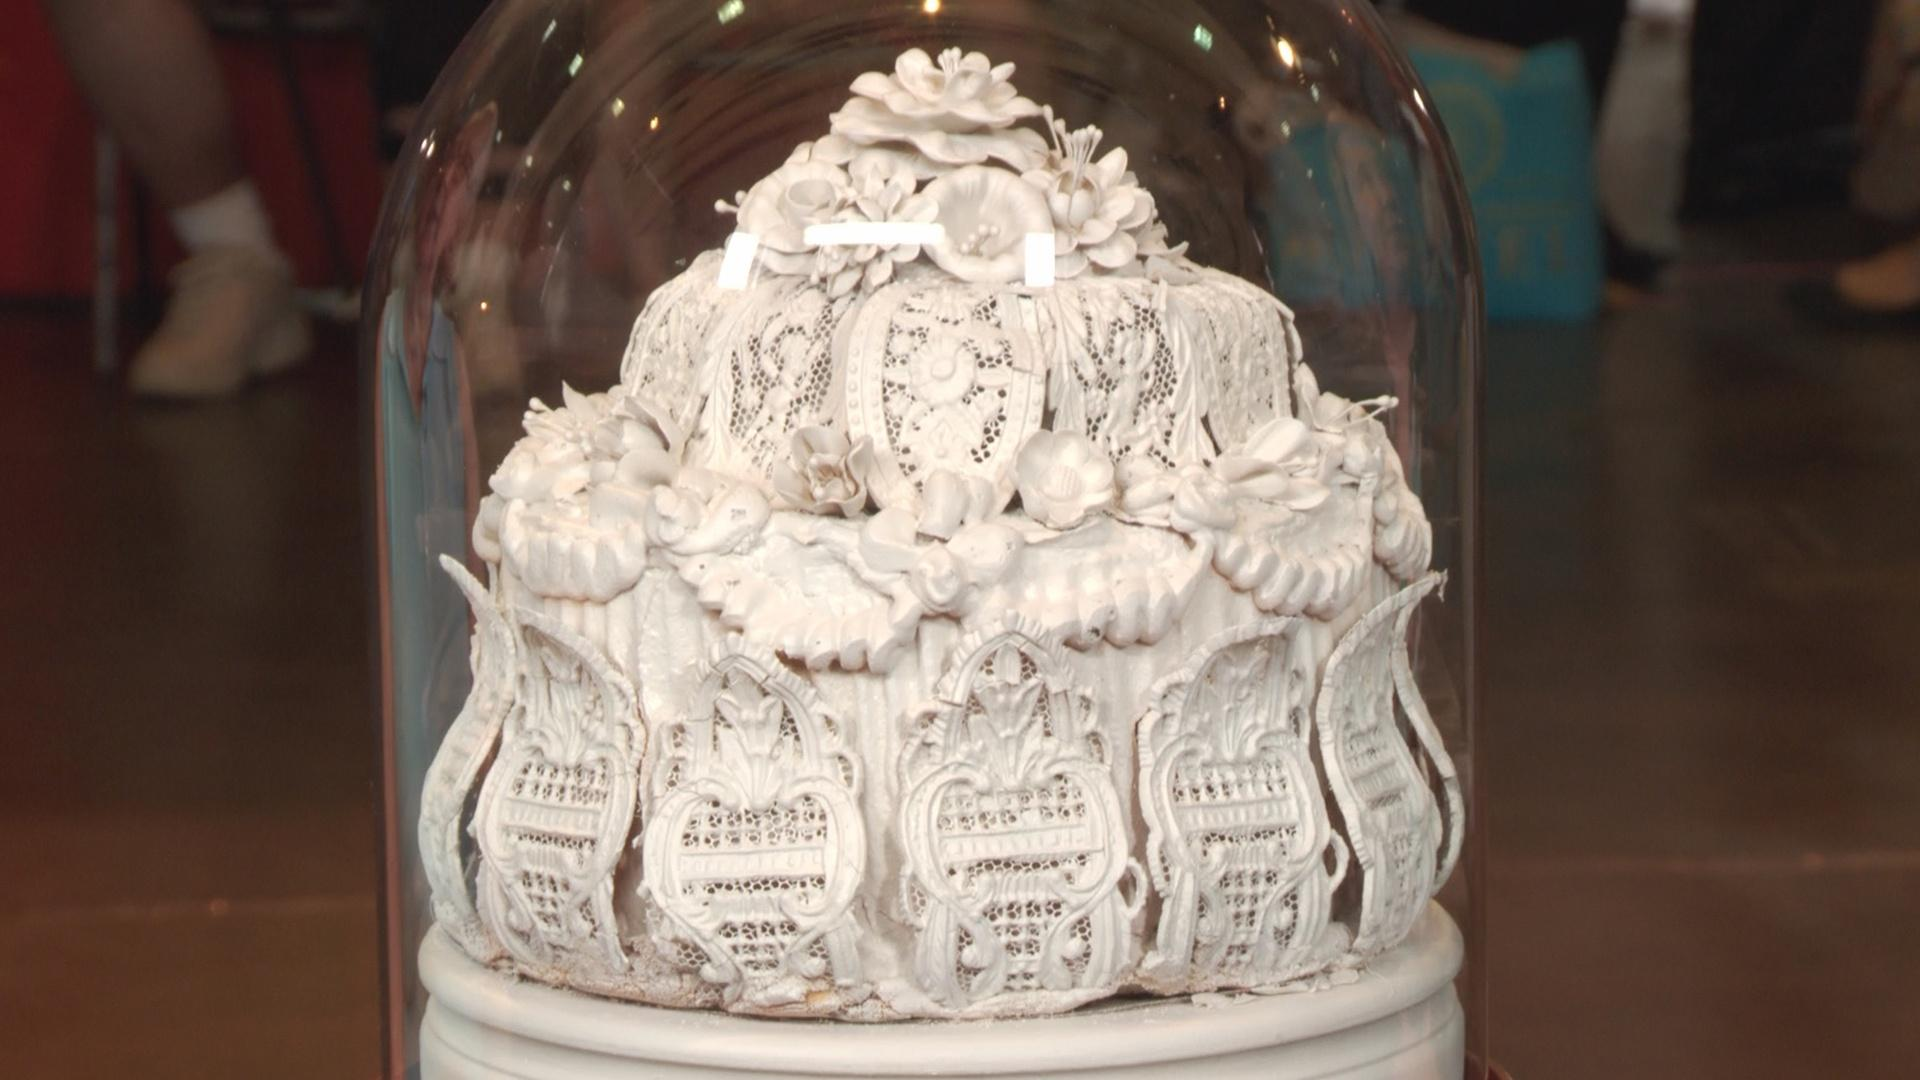 Video S19 Ep16 Web Appraisal 1888 Victorian Wedding Cake Topper